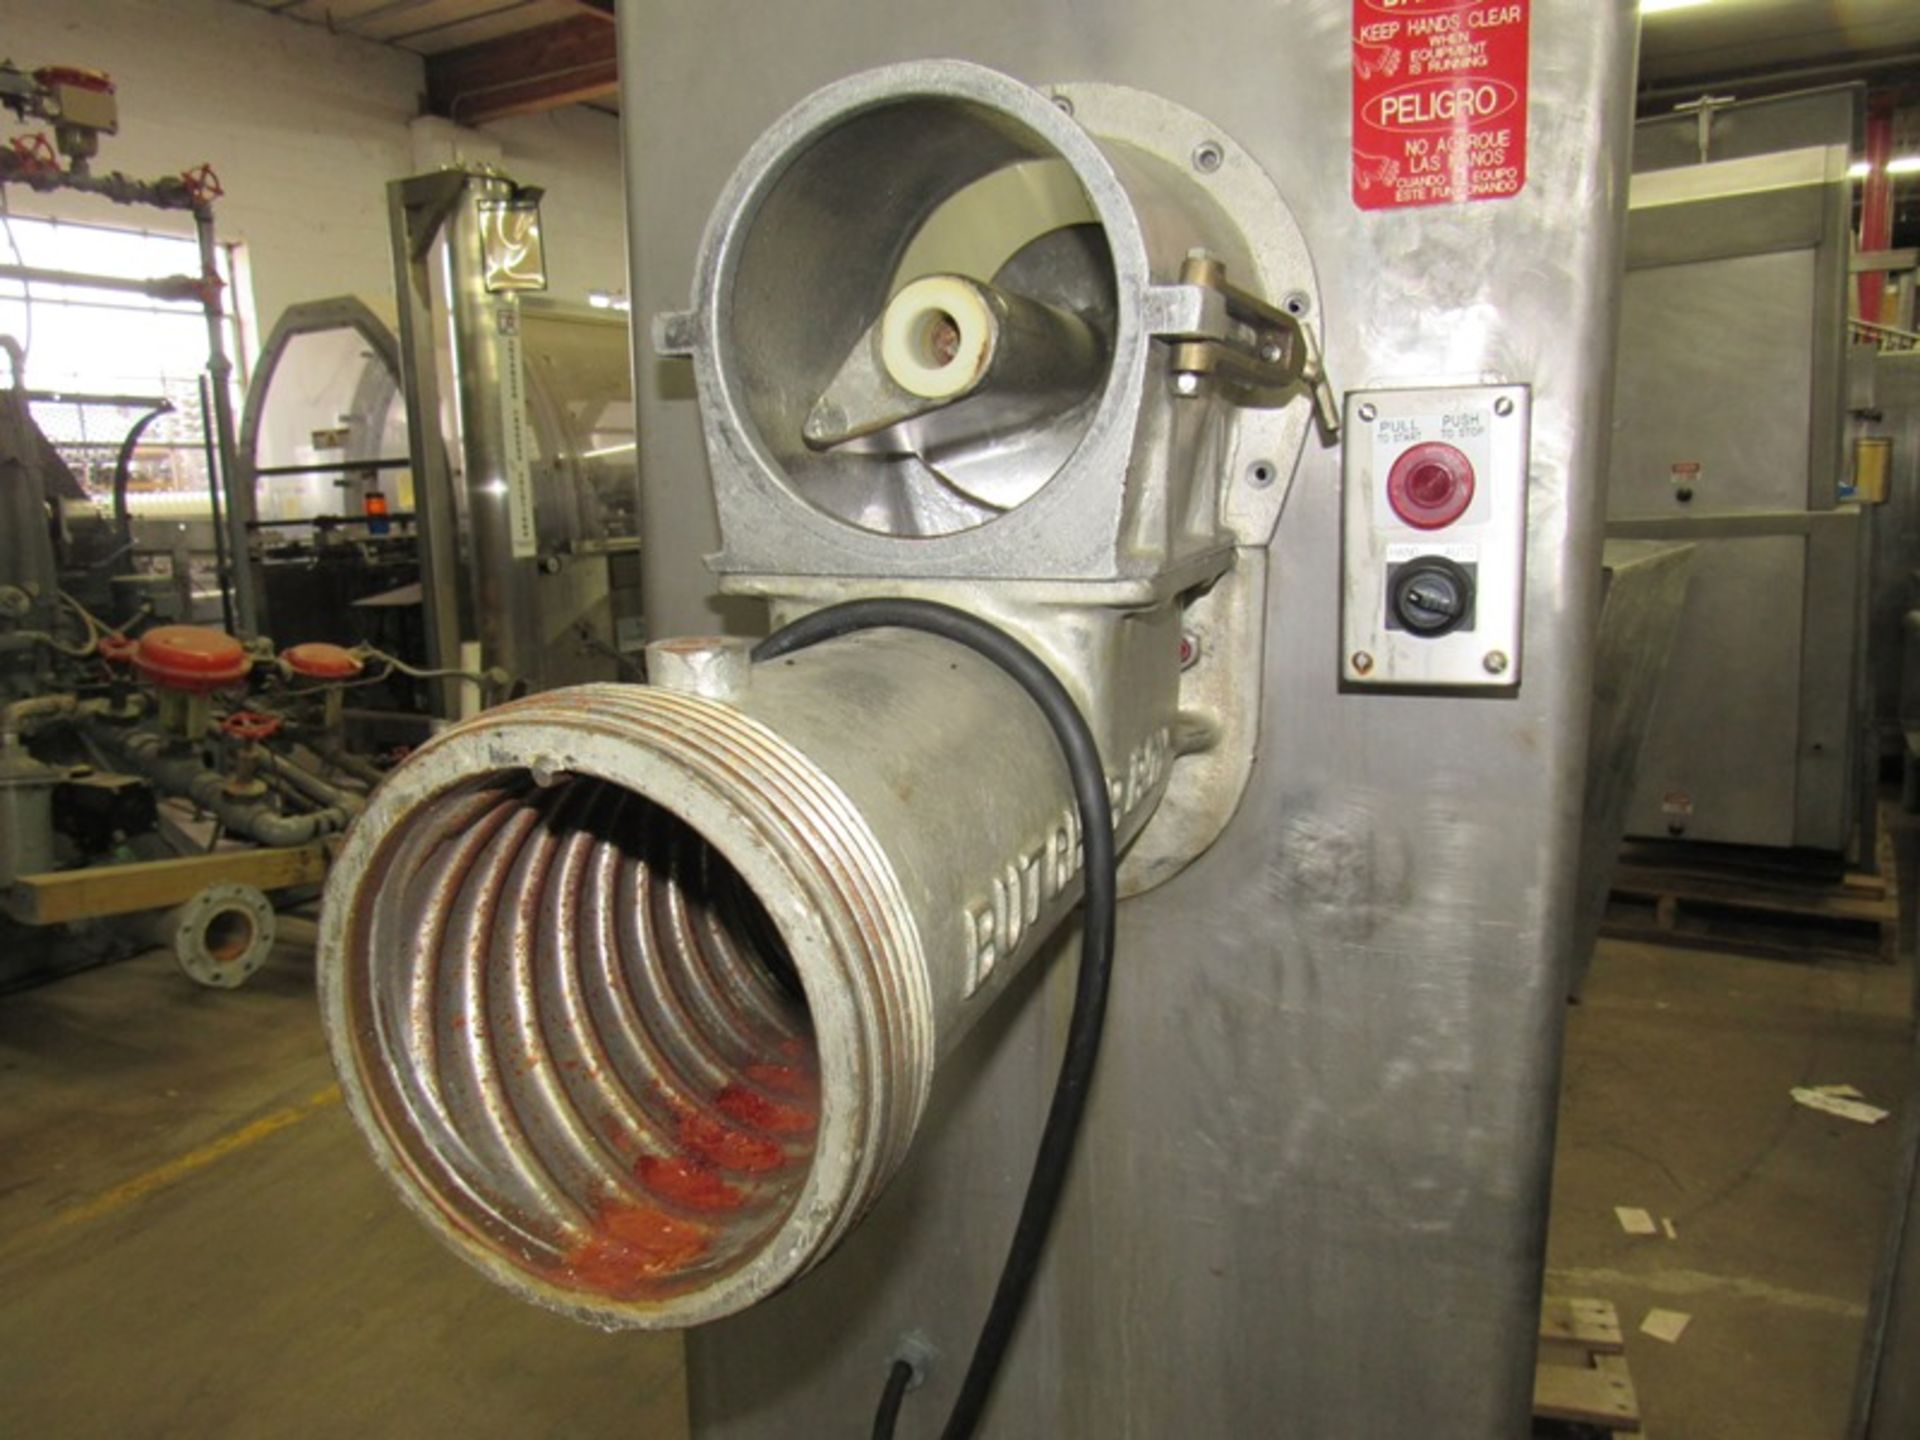 Lot 24 - Butcher Boy Mdl AU56 Mixer/Grinder, missing mixing arms, auger motor head parts;*** All Funds Must